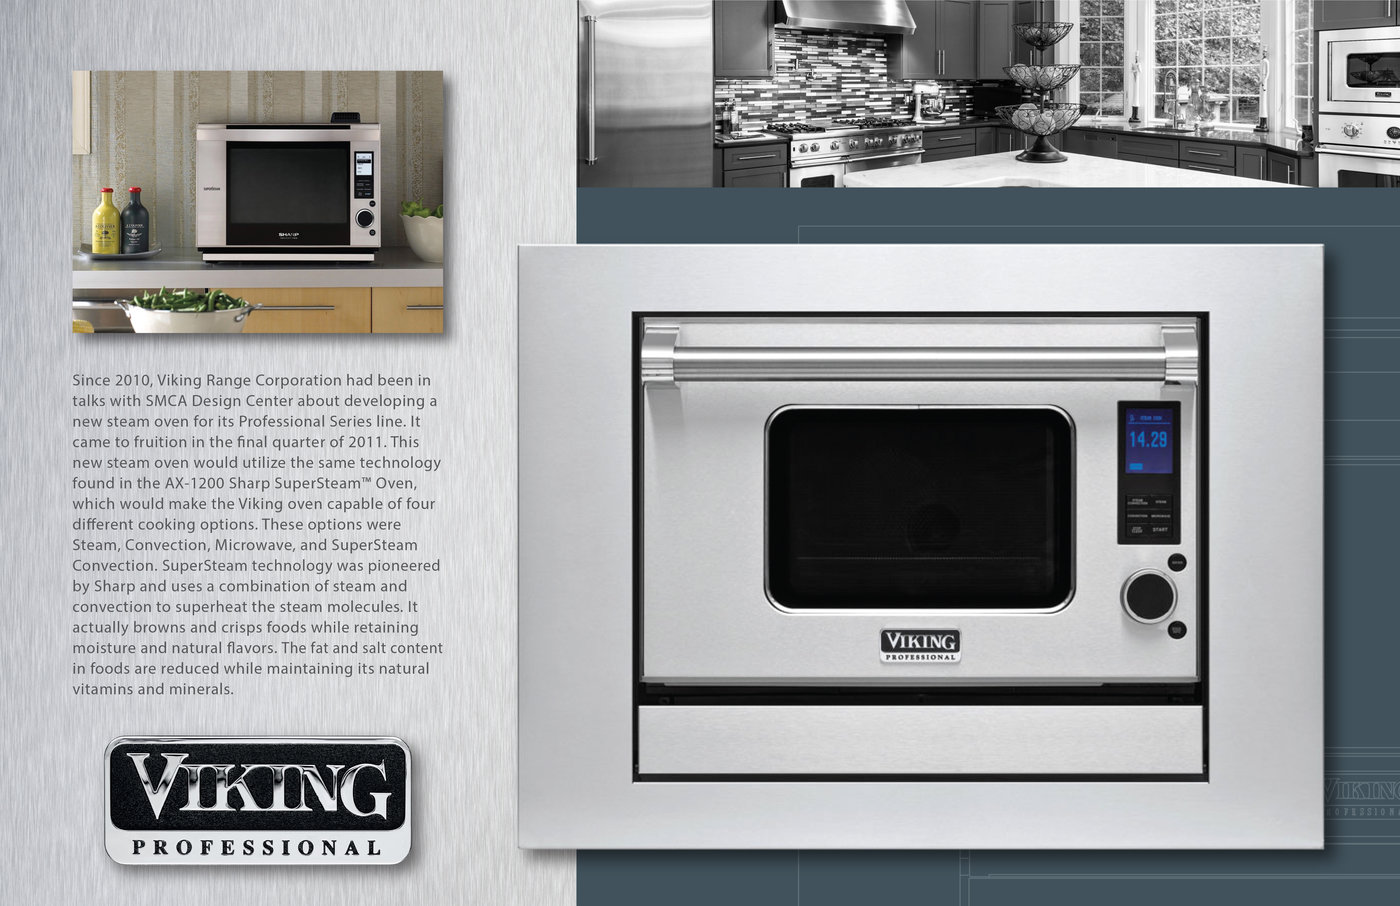 viking combi steam convect oven by lee